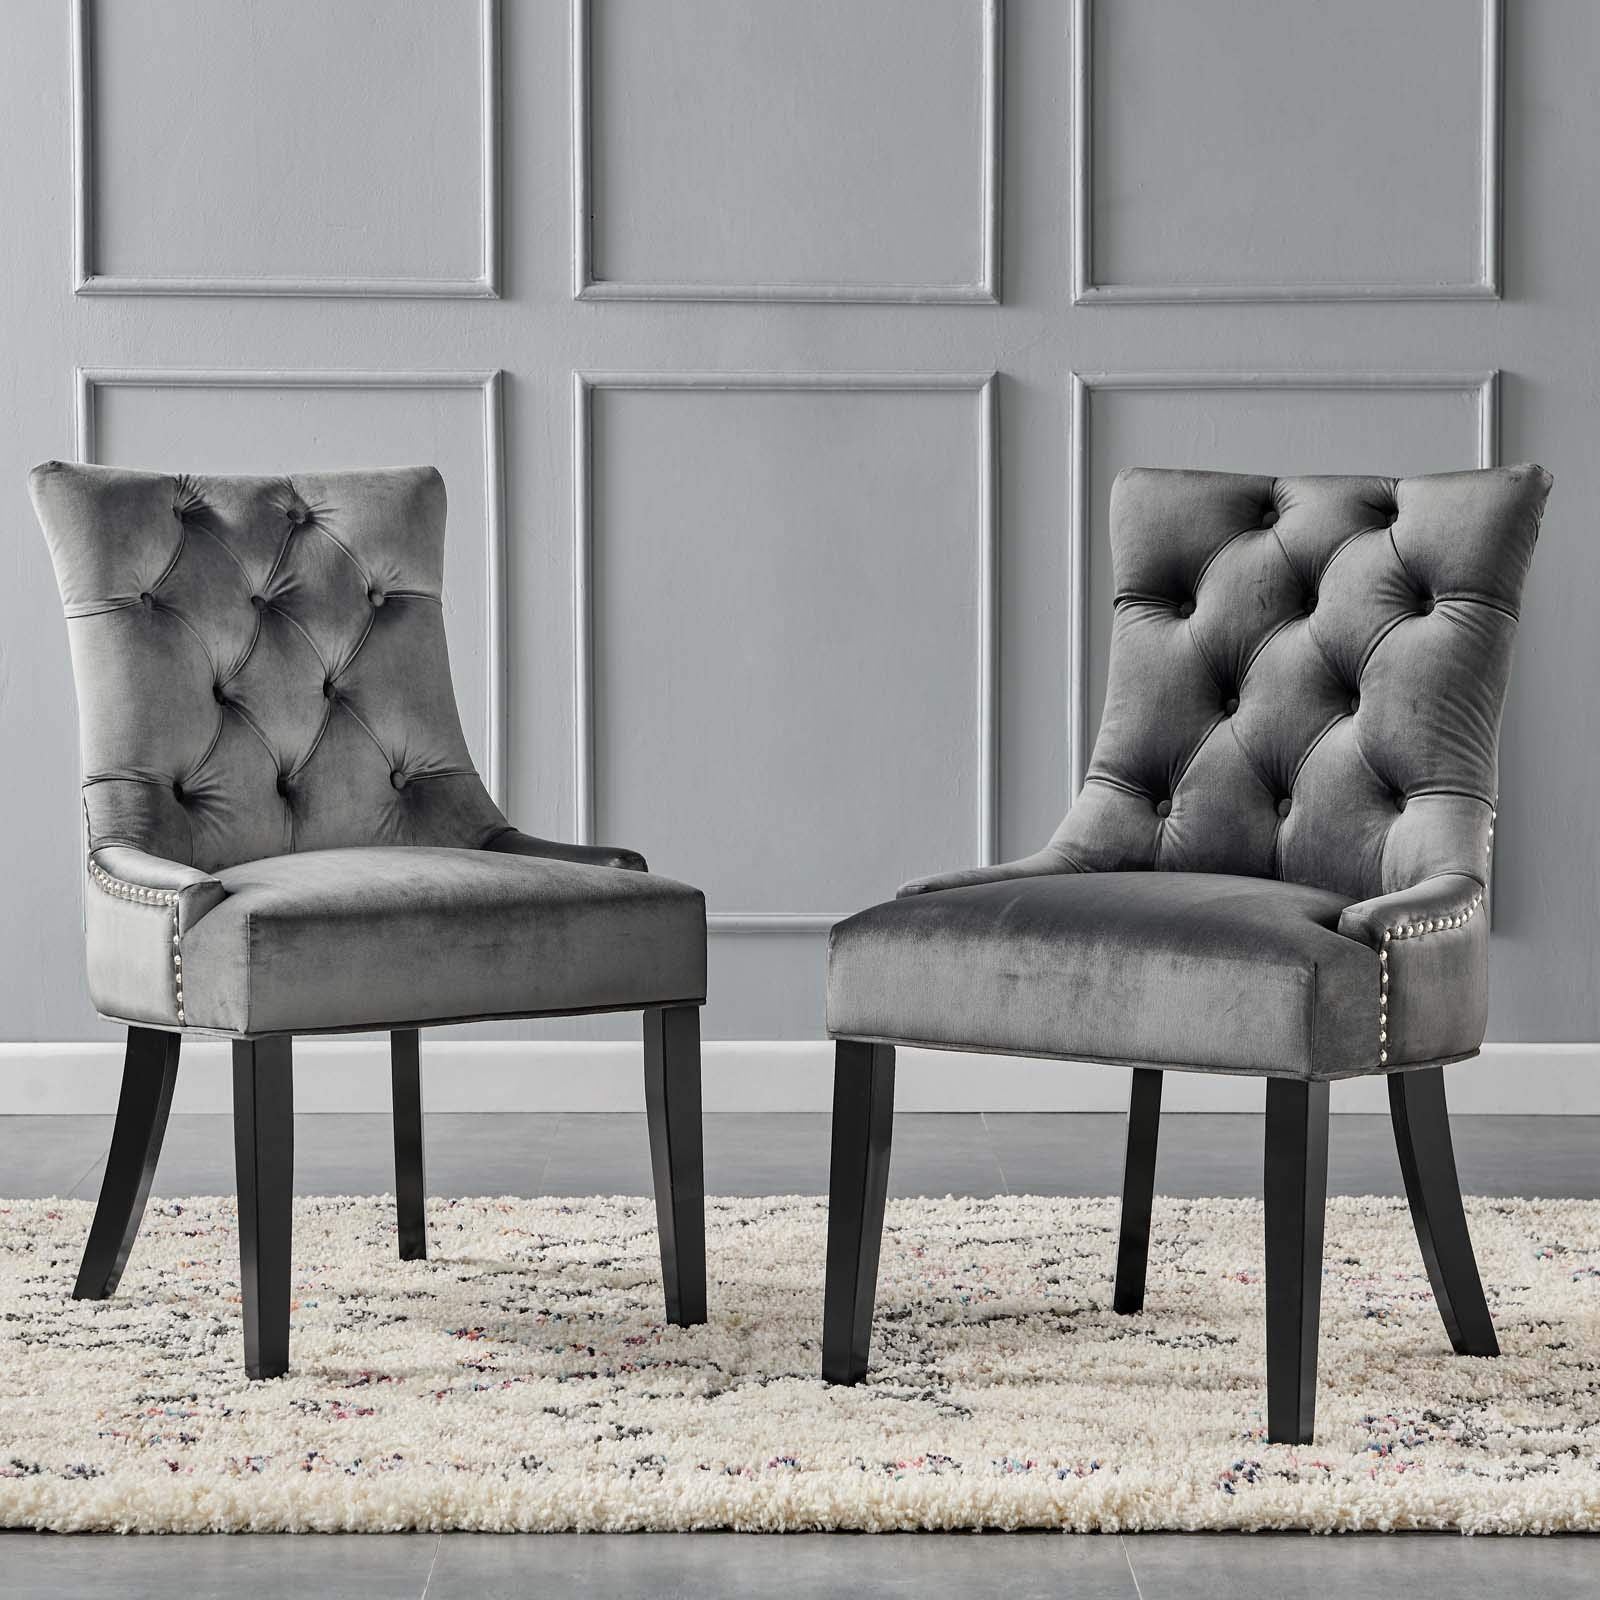 Modway Regent Tufted Performance Velvet Dining Side Chairs - Set of 2, Charcoal